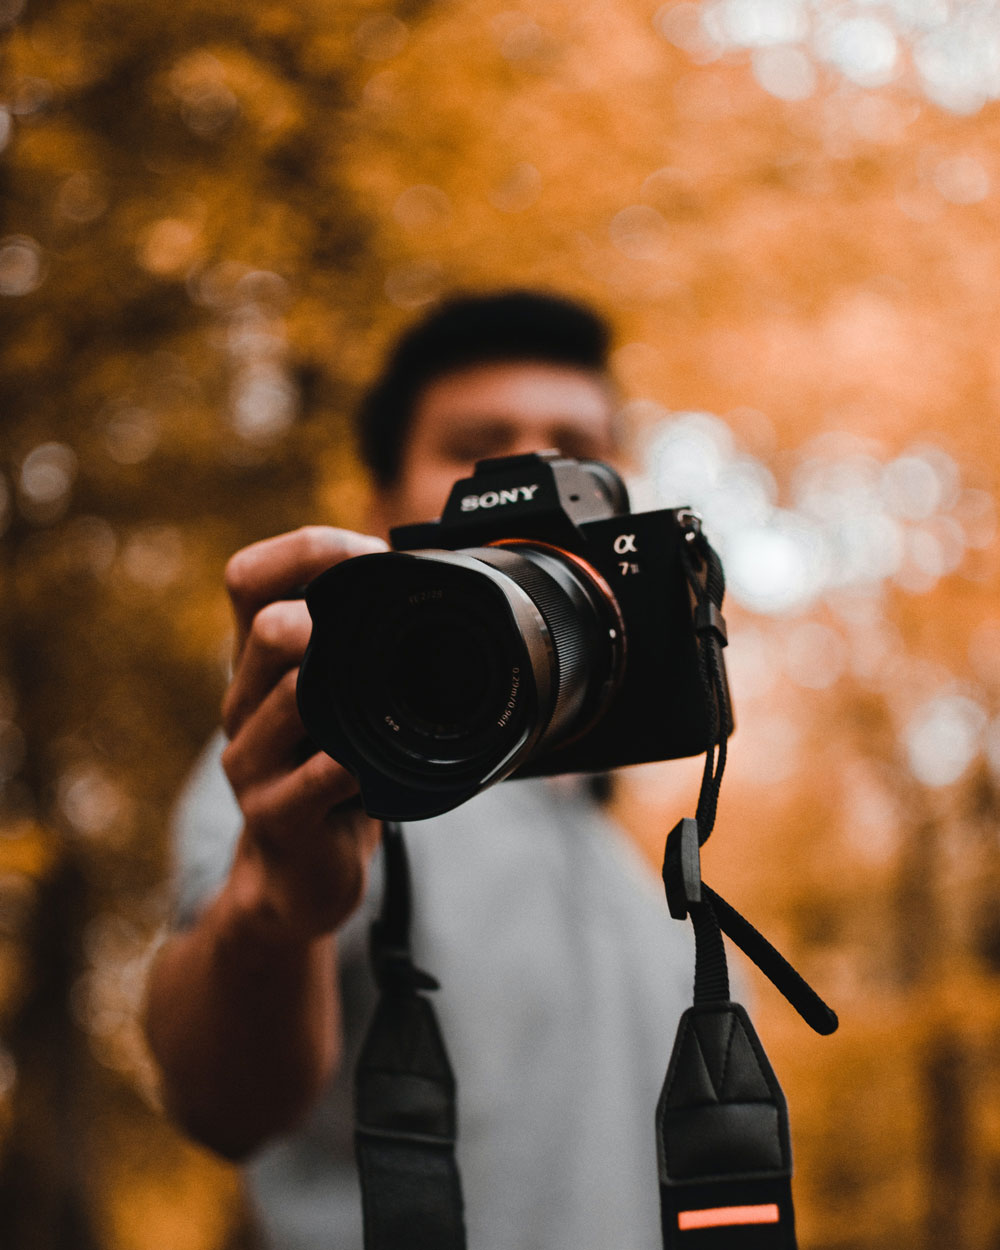 out of focus orange autumnal background, guy holding camera towards the lens covering his face